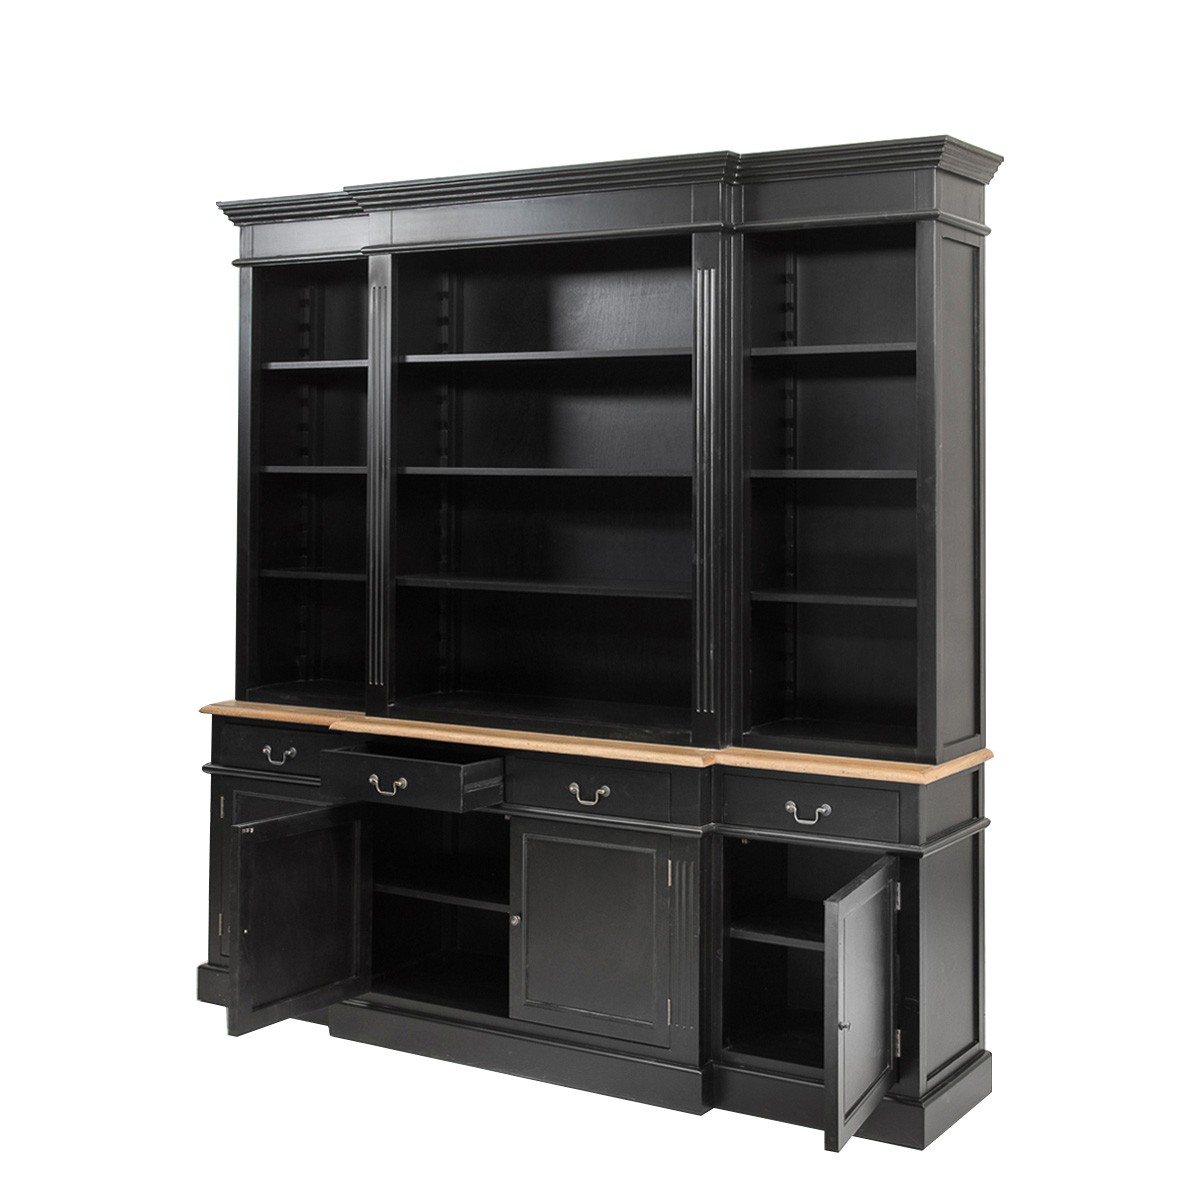 Picture of: Hamptons Style Black Buffet And Hutch Sideboard Bookcase Cabinet With Drawers Wholesales Direct